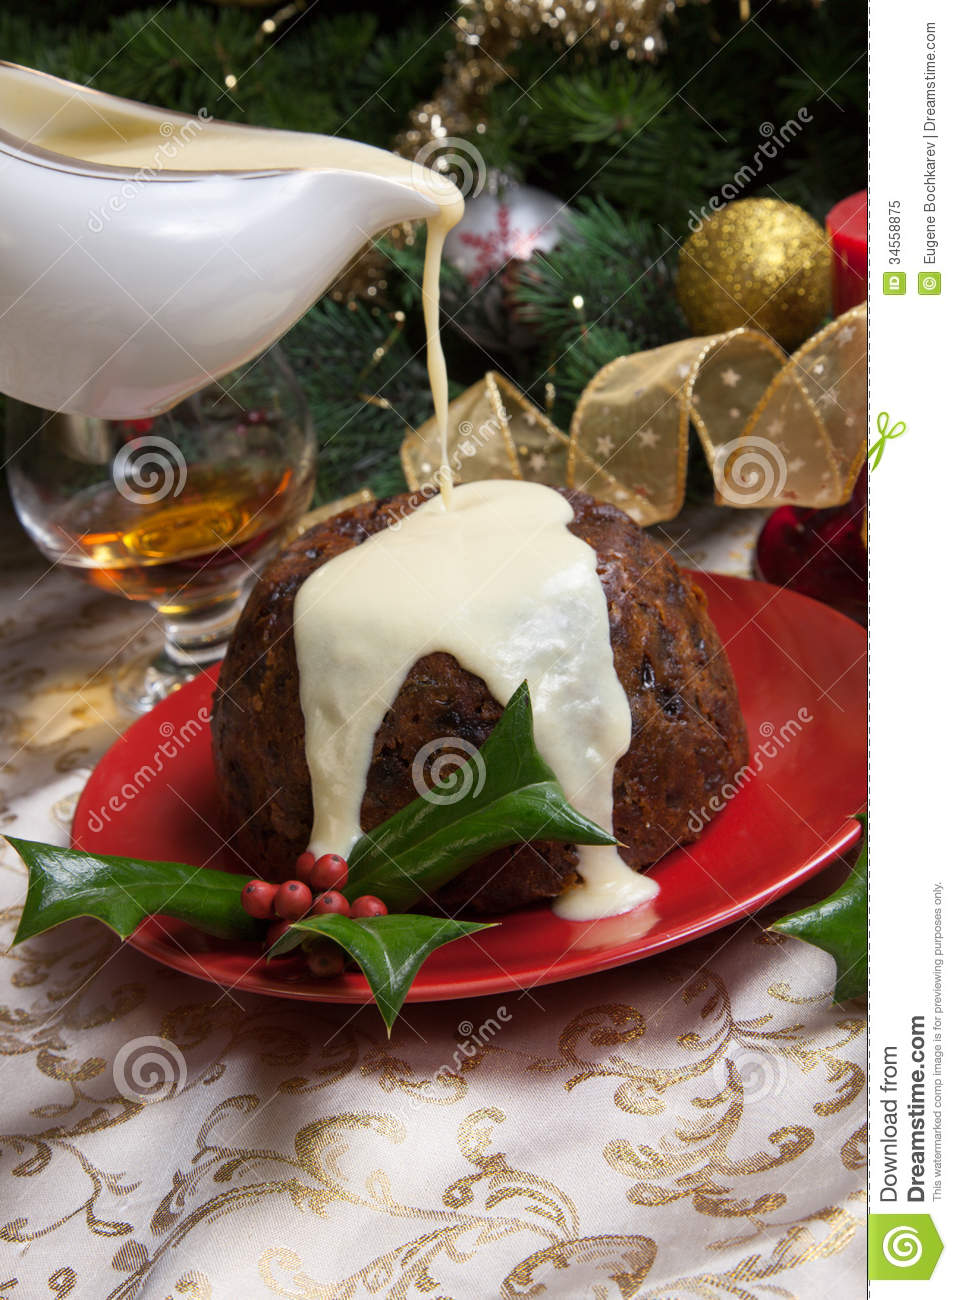 Christmas Pudding With White Sauce Royalty Free Stock